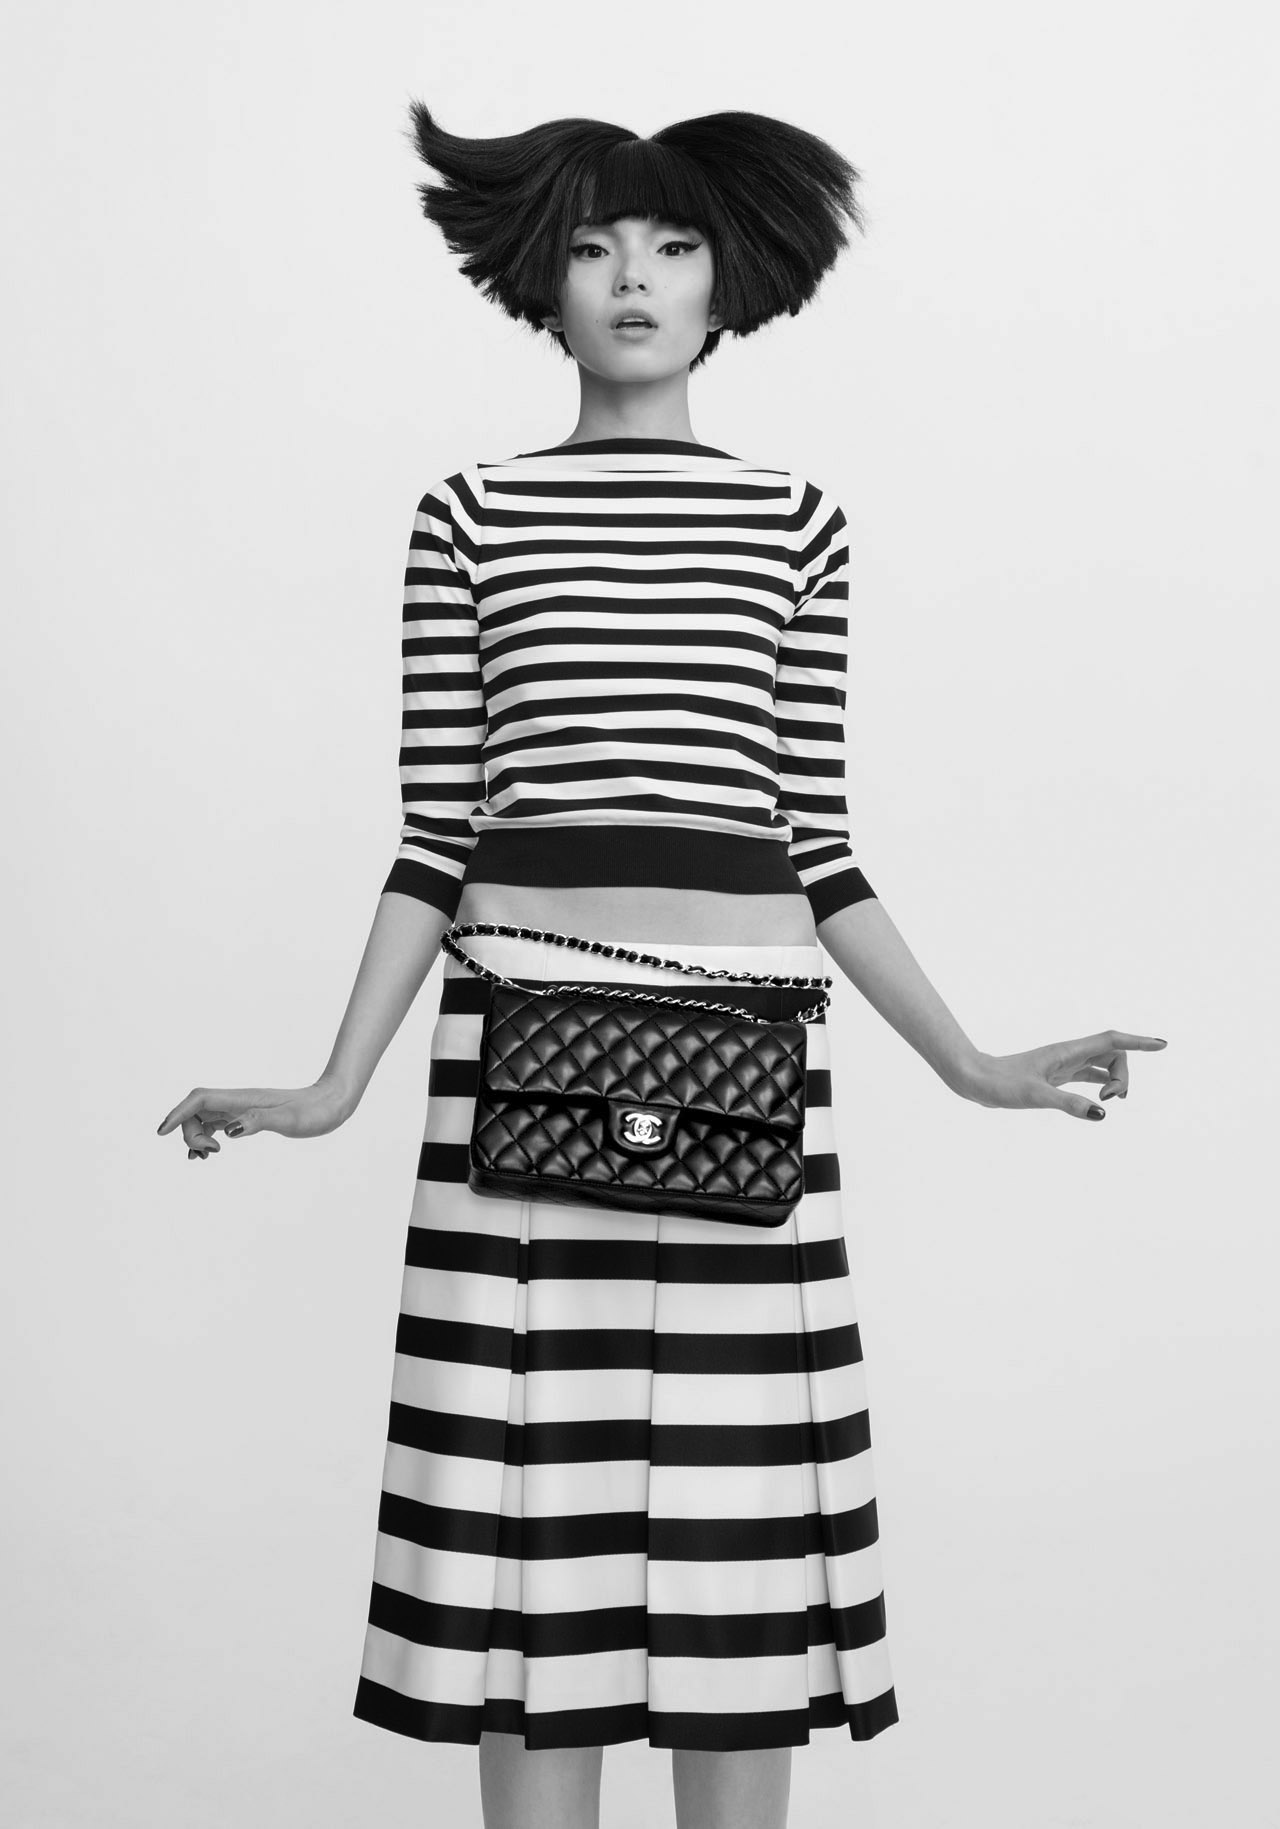 1 Girl, 1 bag, 7 looks by CR Fashion Book 2013 - Marc Jacobs